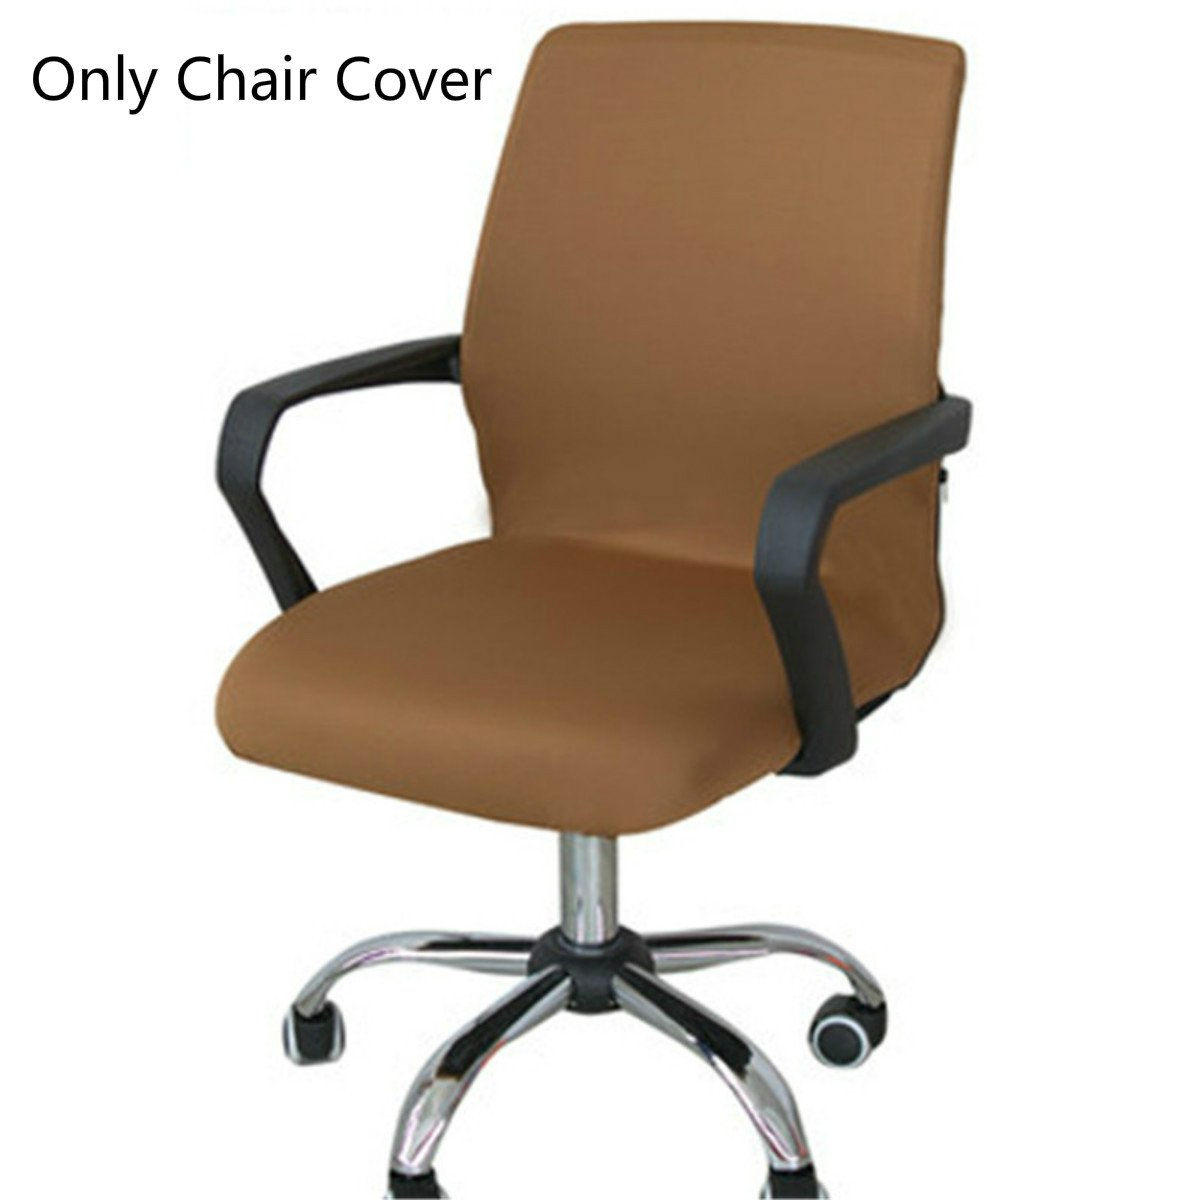 Caveen Office Chair Cover Computer Chair Universal Boss Chair Cover Modern Simplism Style High Back Large Size (Chair not included) coffee medium by Caveen